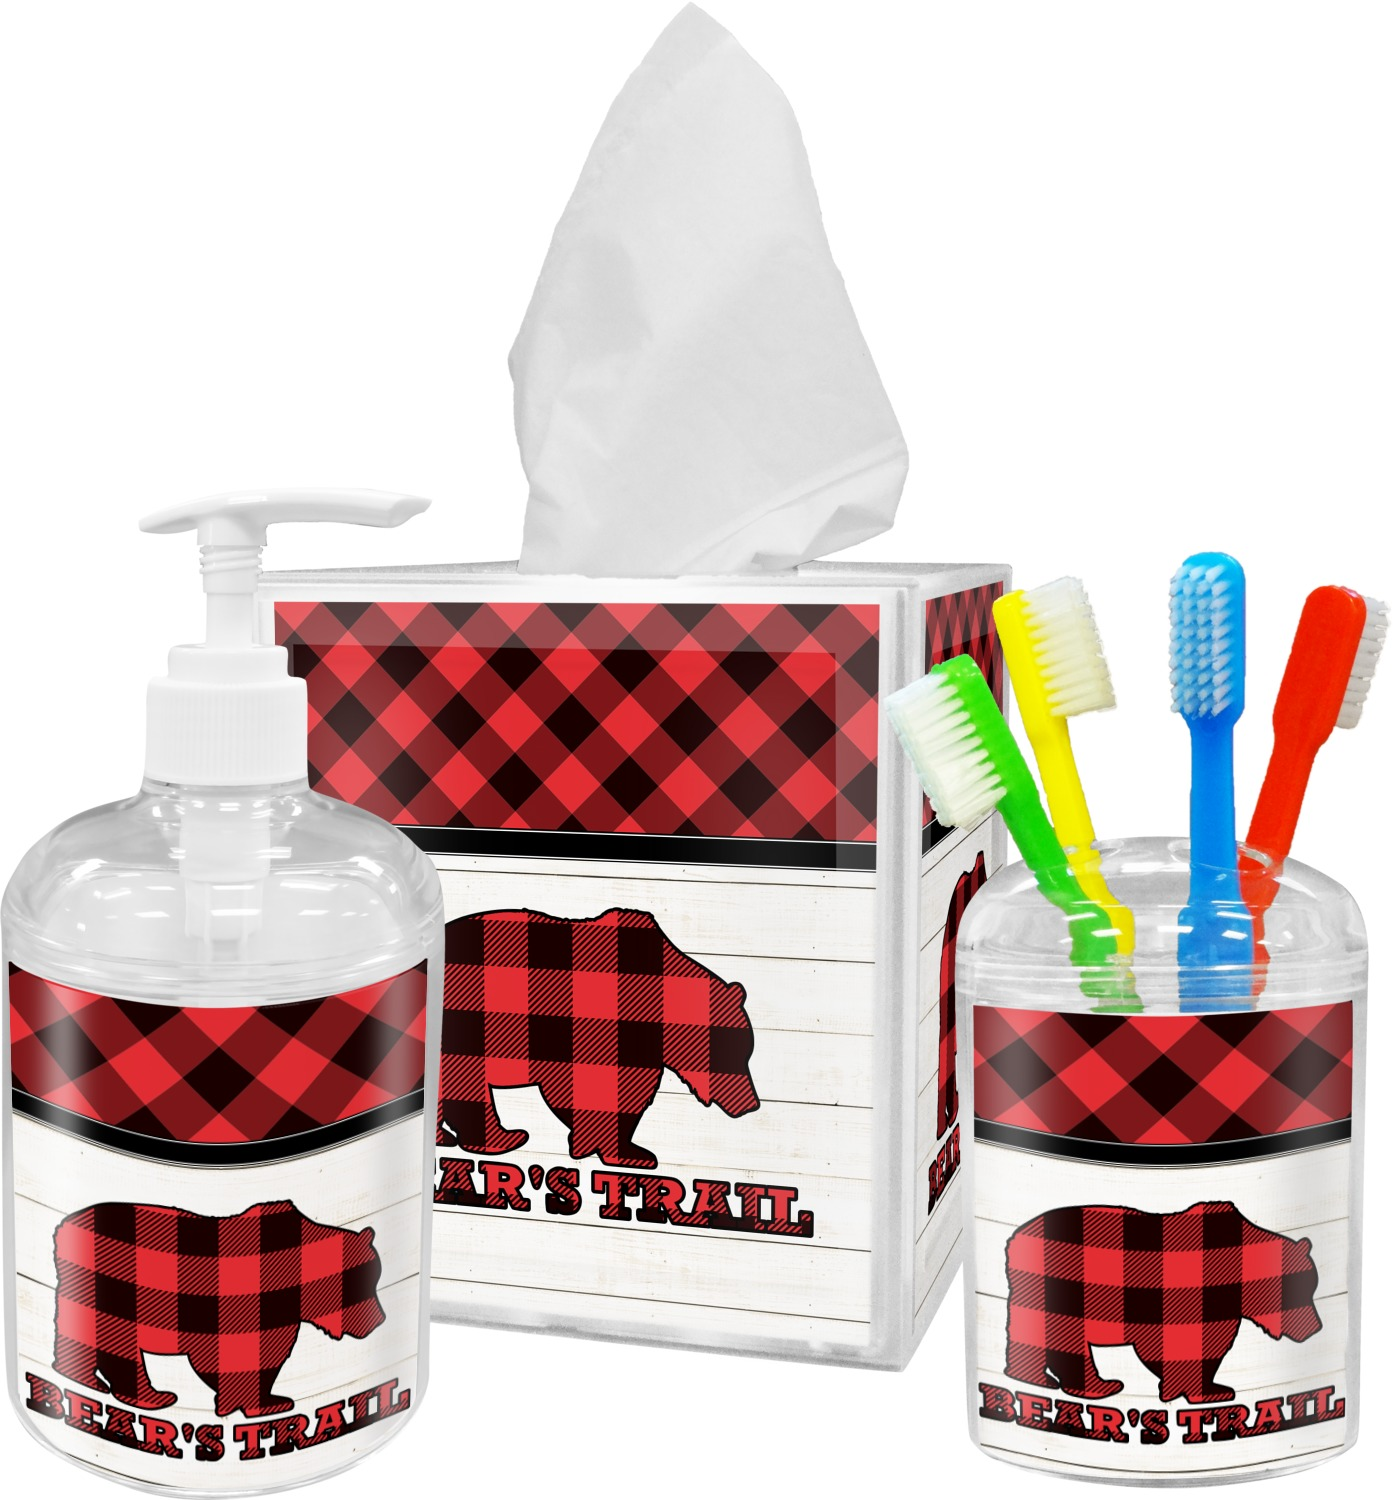 Lumberjack plaid bathroom accessories set personalized - Monogrammed bathroom accessories ...